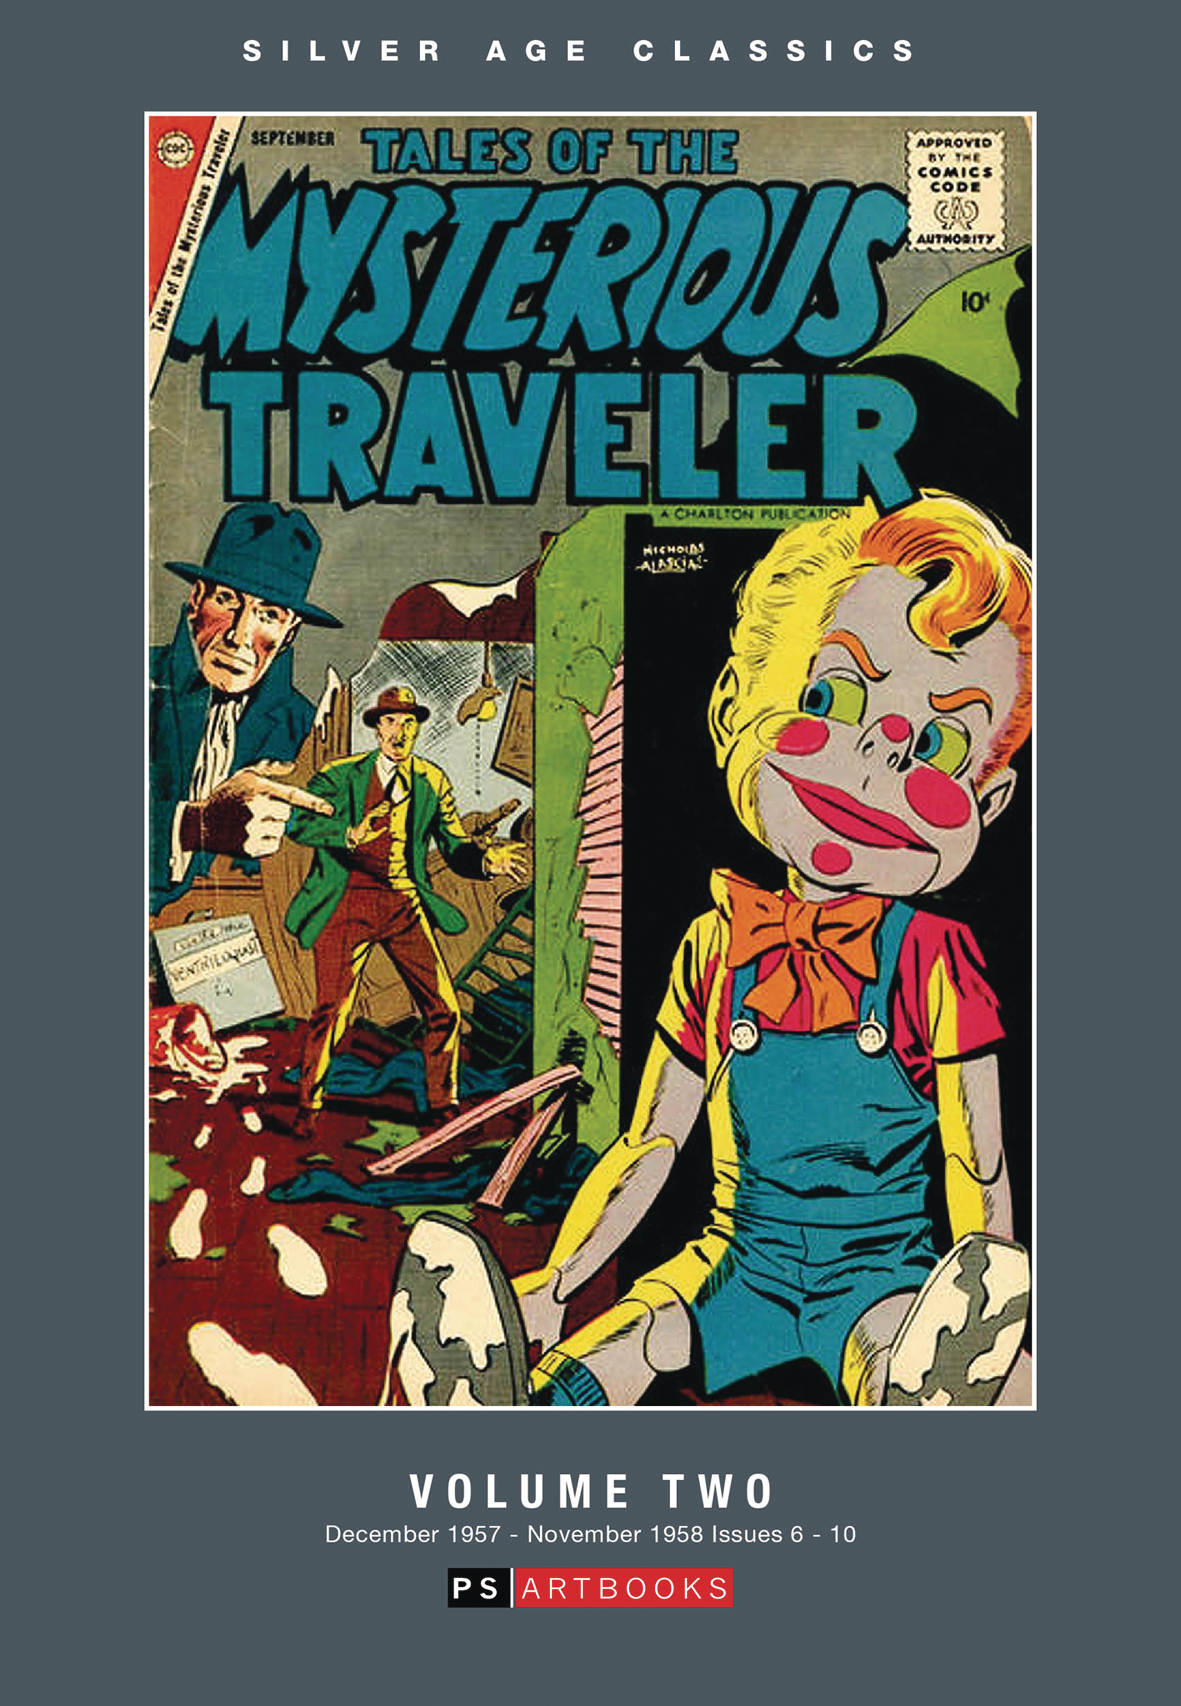 SILVER AGE CLASSICS TALES OF MYSTERIOUS TRAVELER HC VOL 02 (